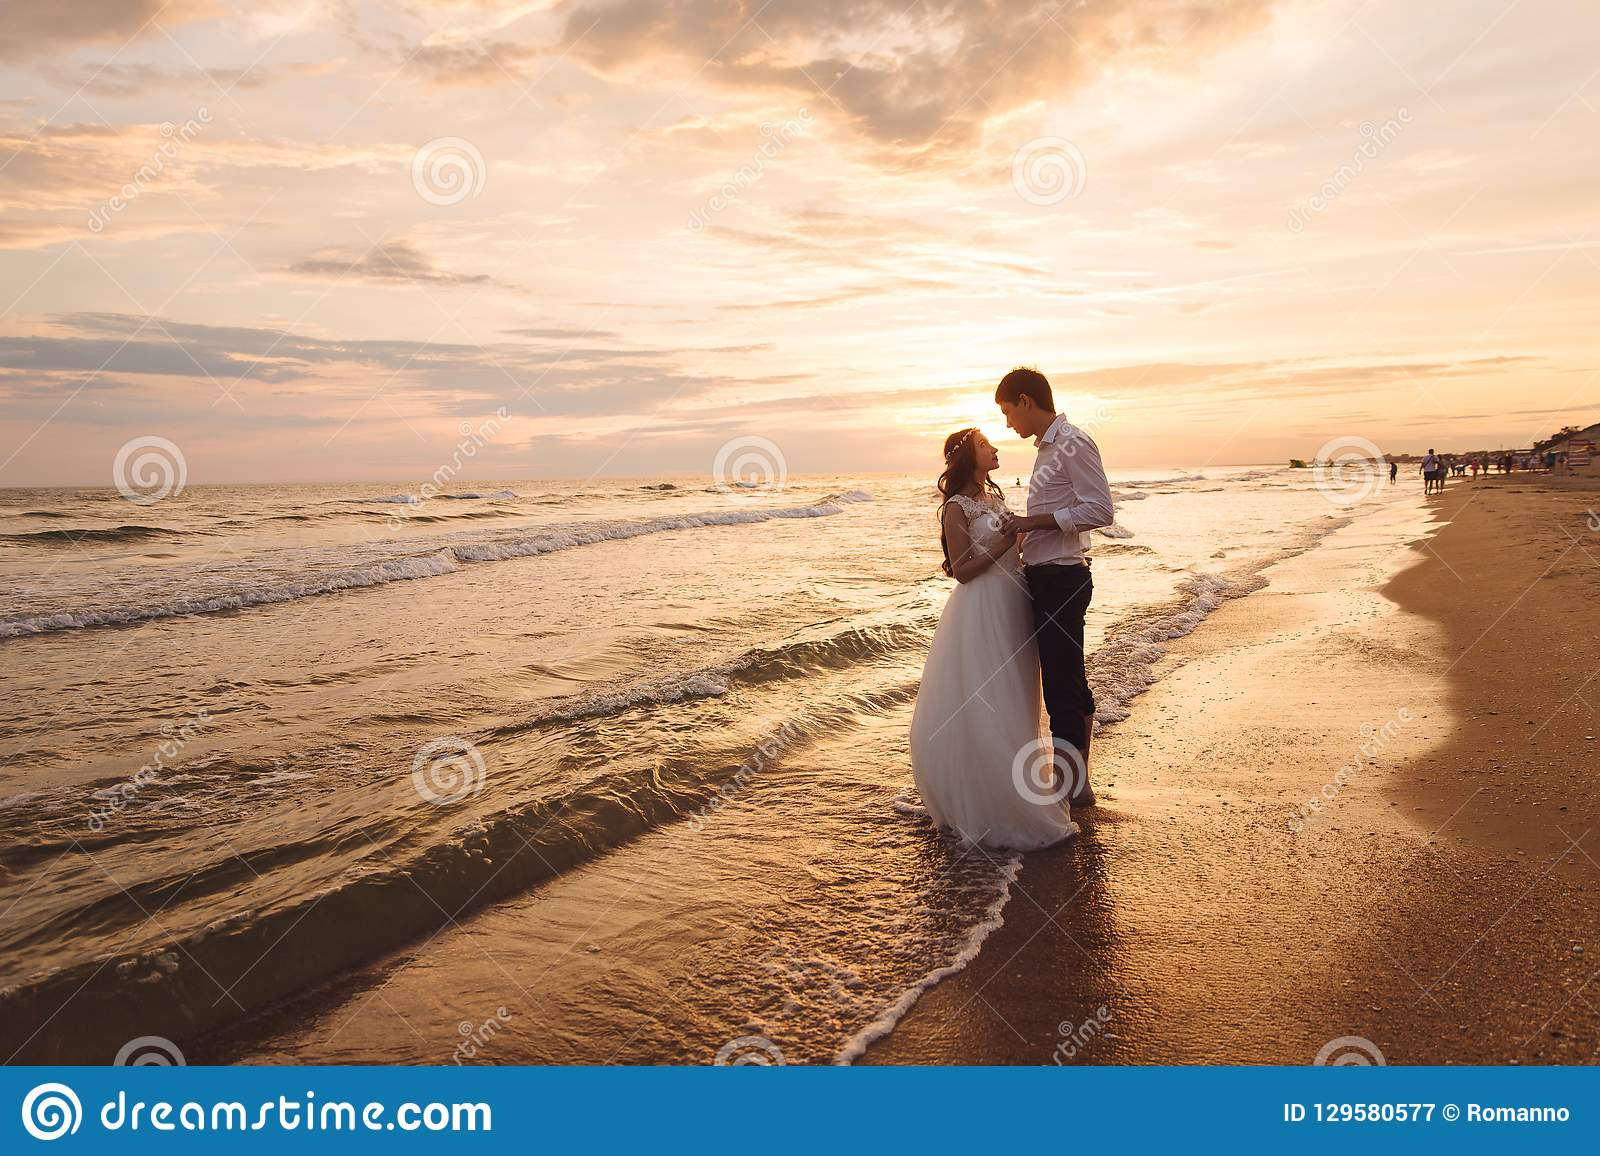 A beautiful couple of newlyweds, the bride and groom walking on the beach. Gorgeous sunset and sky. Wedding dresses, a